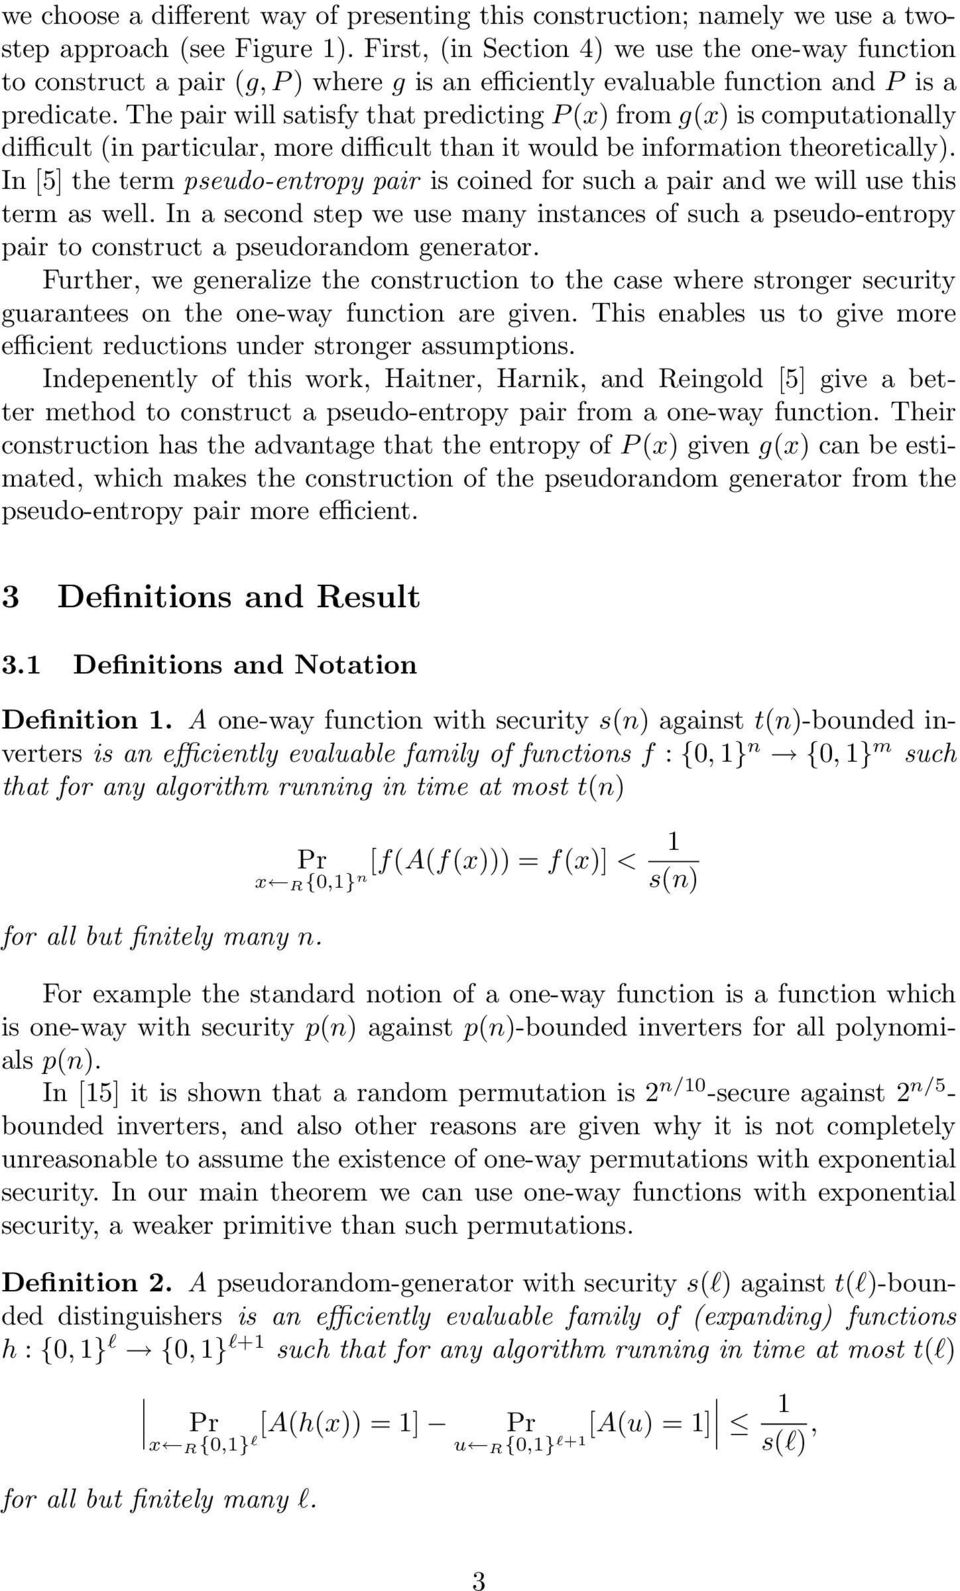 The pair will satisfy that predicting P x) from gx) is computationally difcult in particular, more difcult than it would be information theoretically).